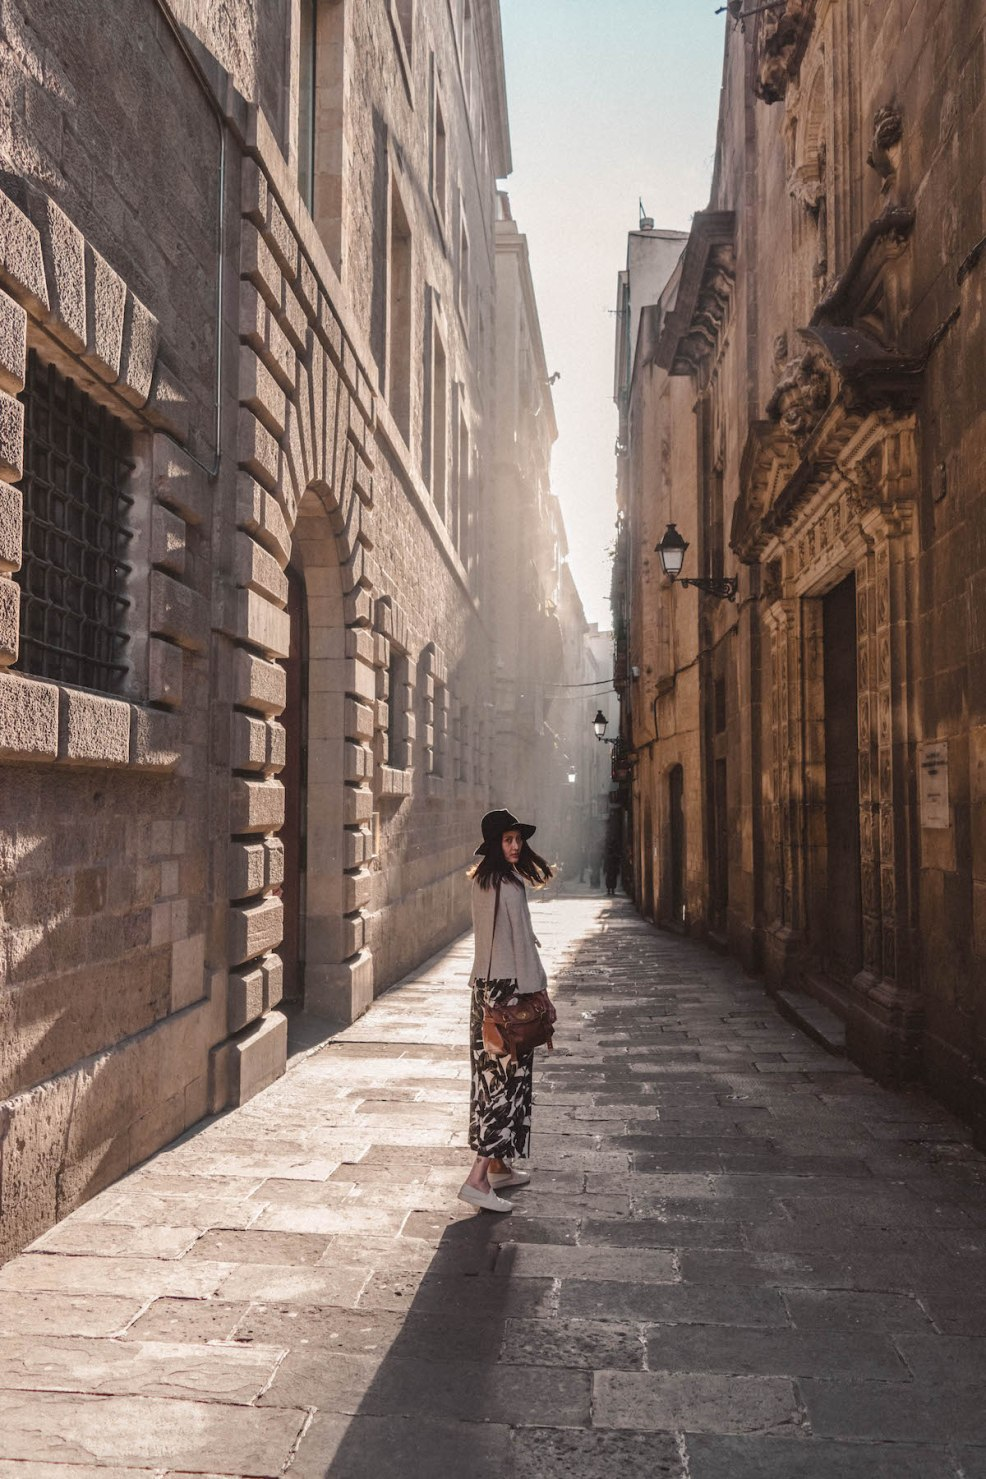 Discovering magical alleys in the Gothic Quarter